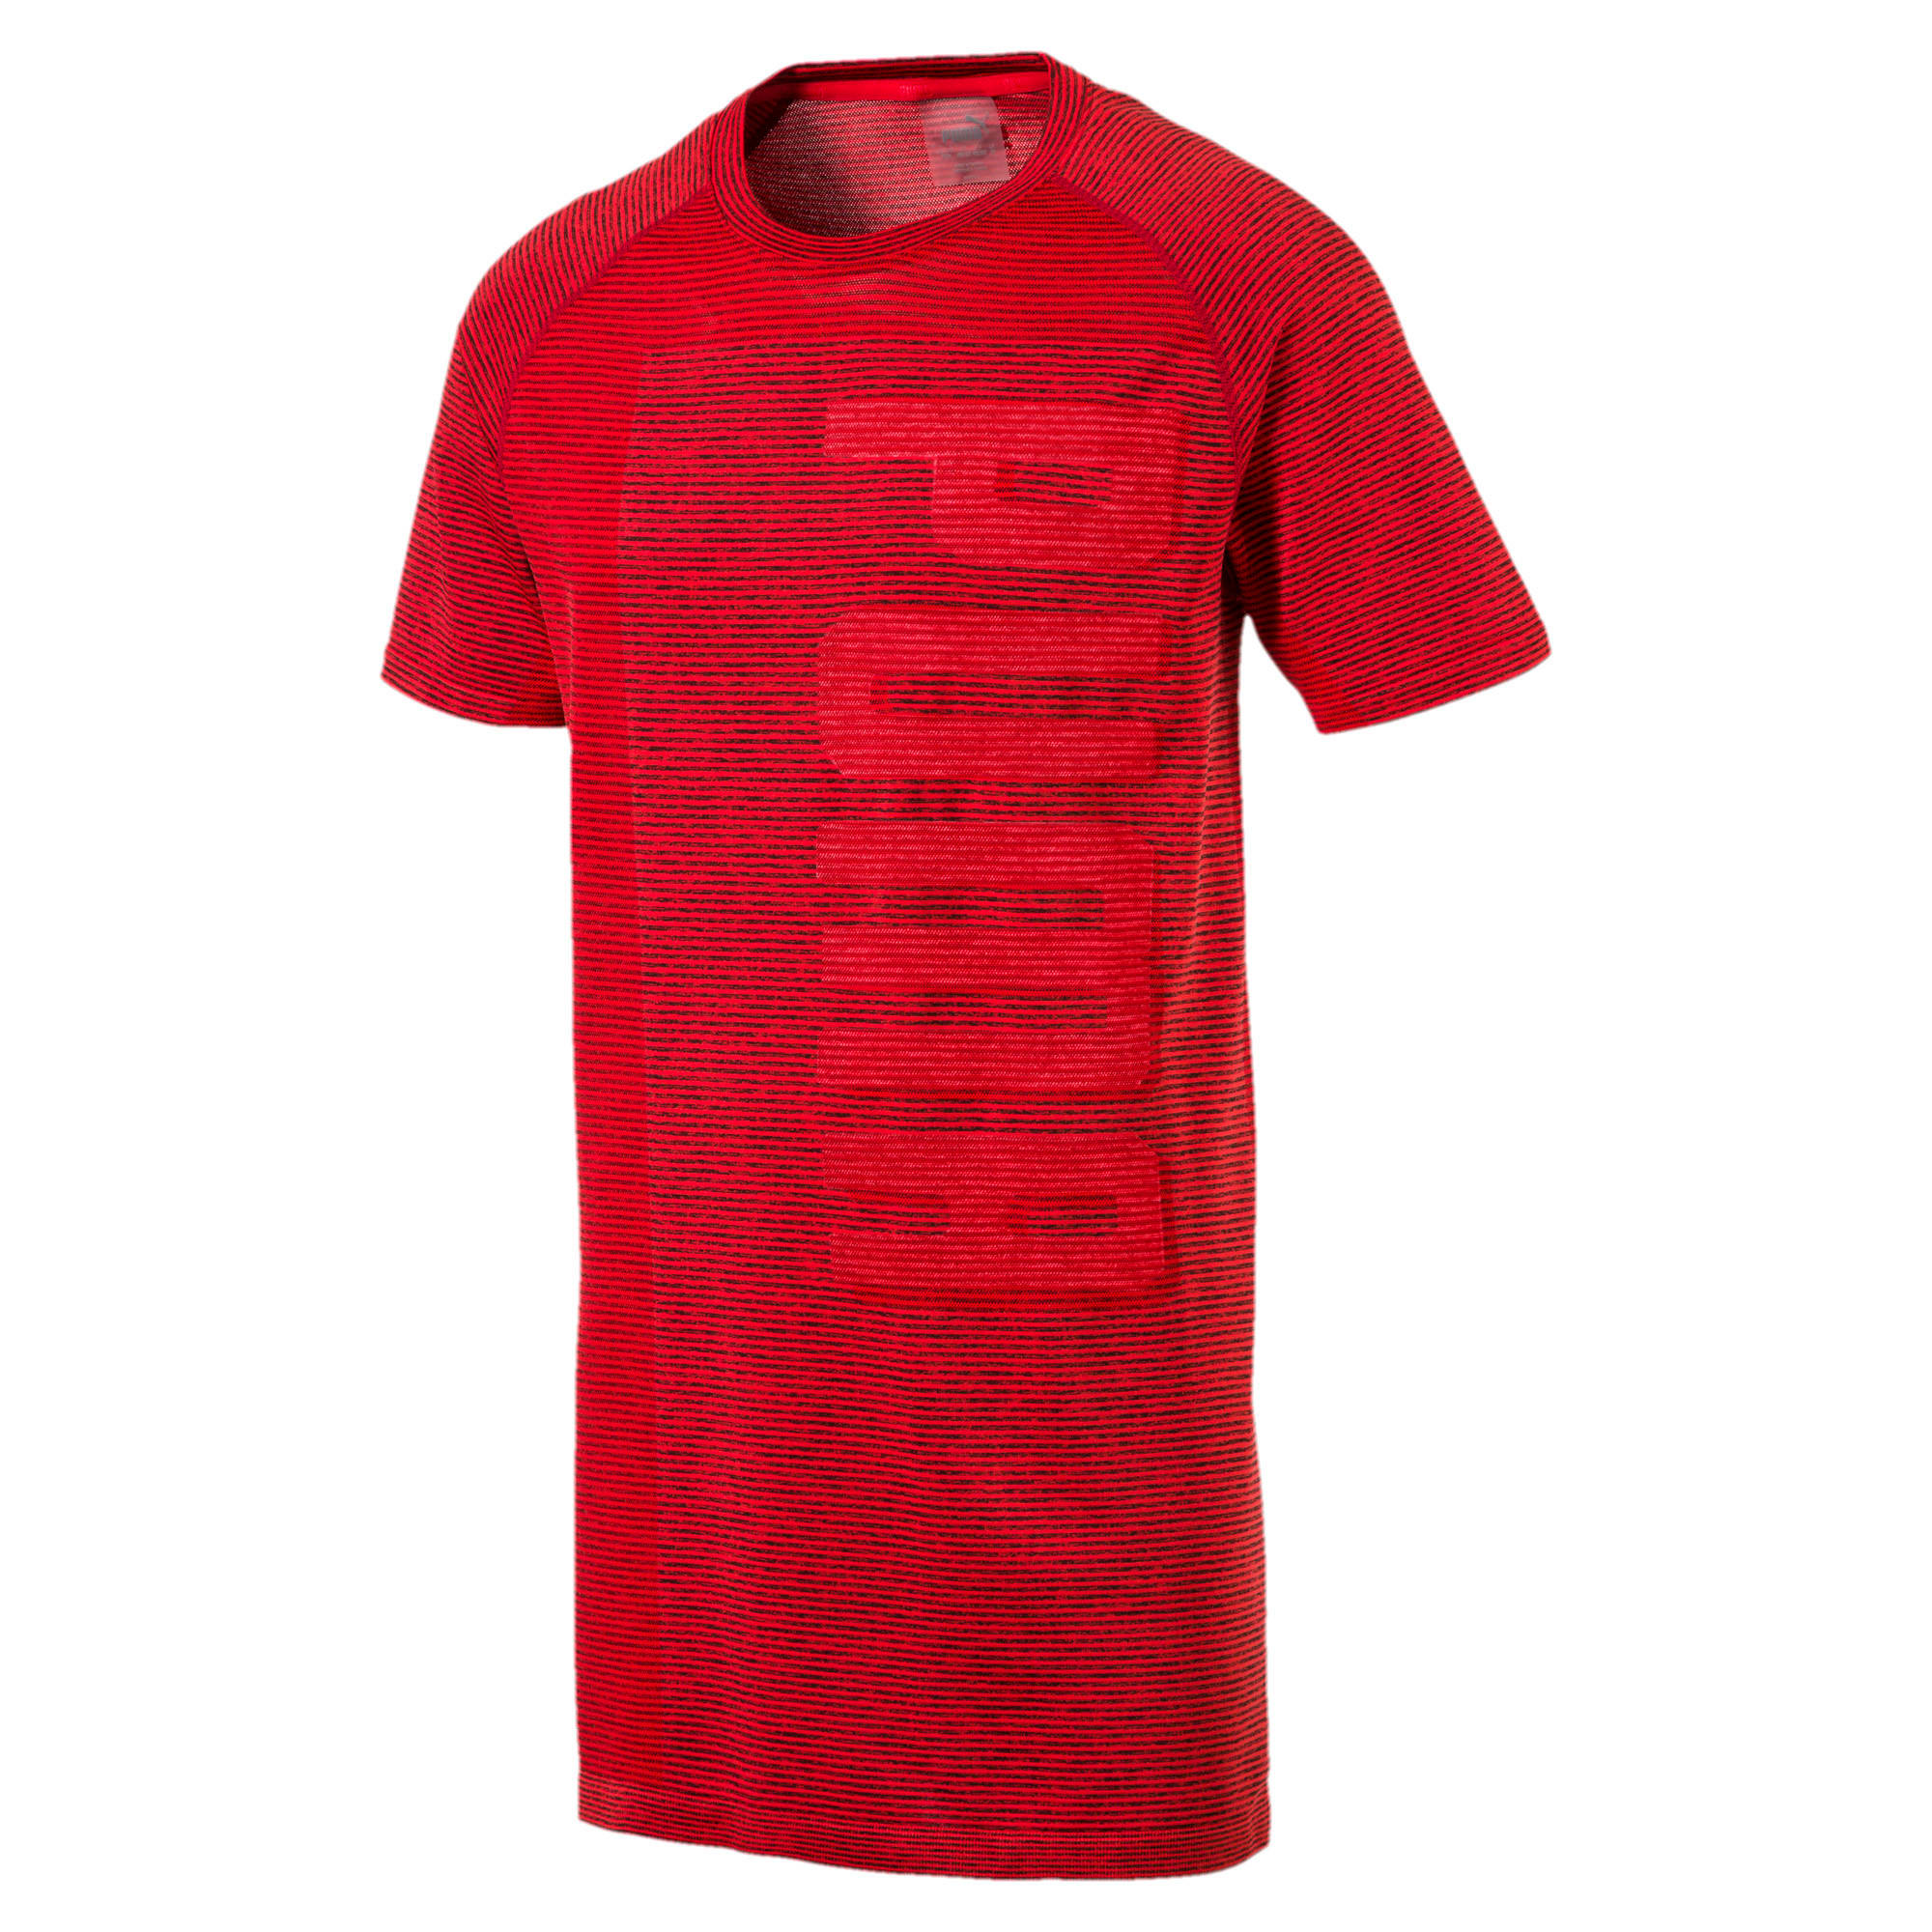 Thumbnail 1 of evoKNIT Men's T-Shirt, Flame Scarlet Heather, medium-IND